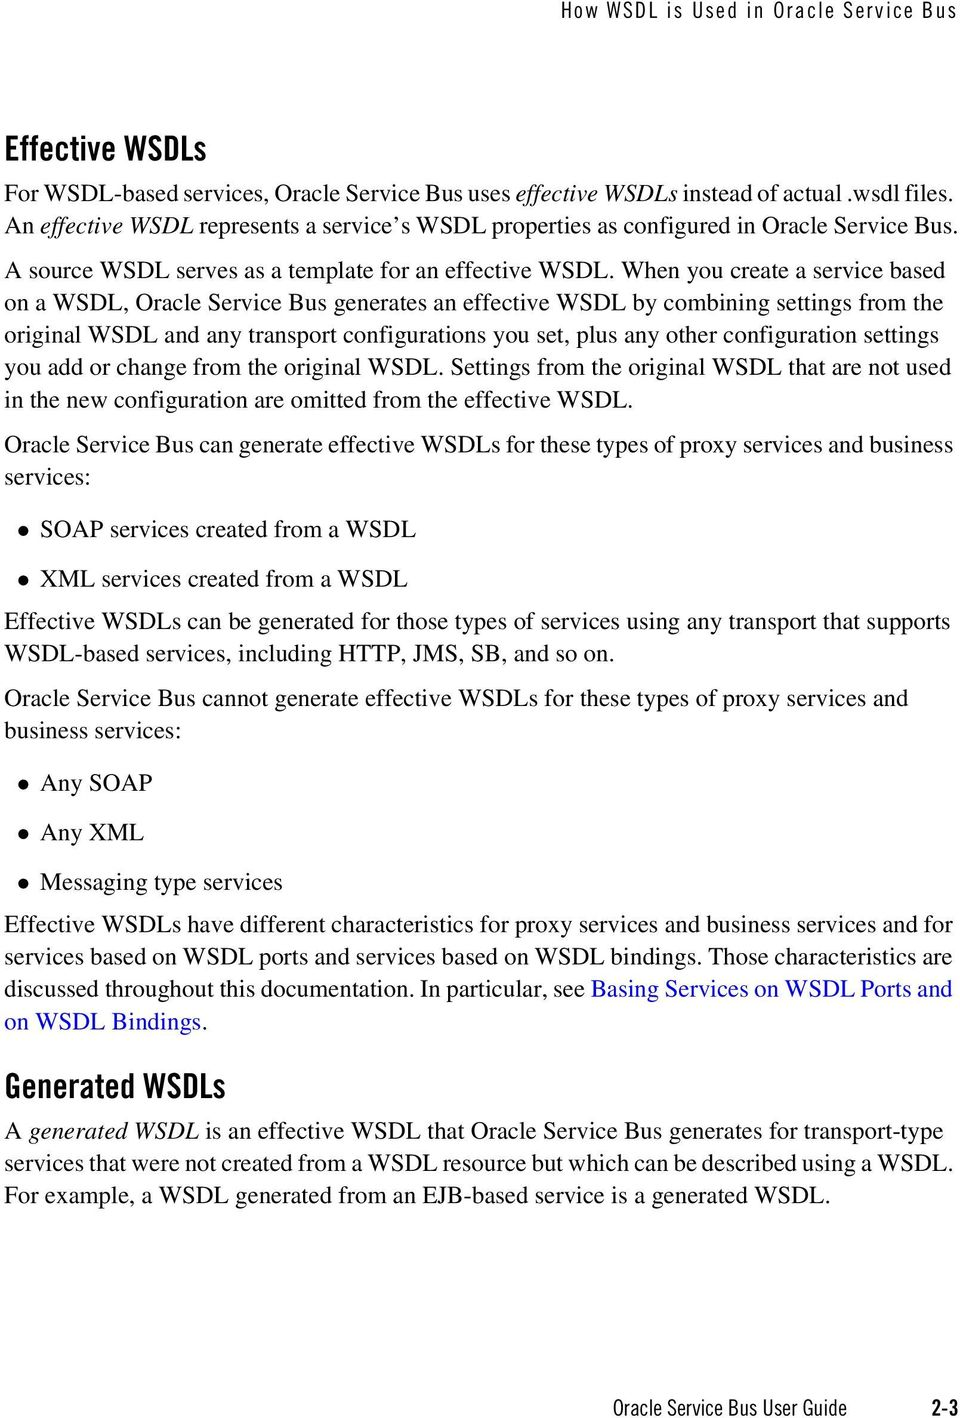 When you create a service based on a WSDL, Oracle Service Bus generates an effective WSDL by combining settings from the original WSDL and any transport configurations you set, plus any other